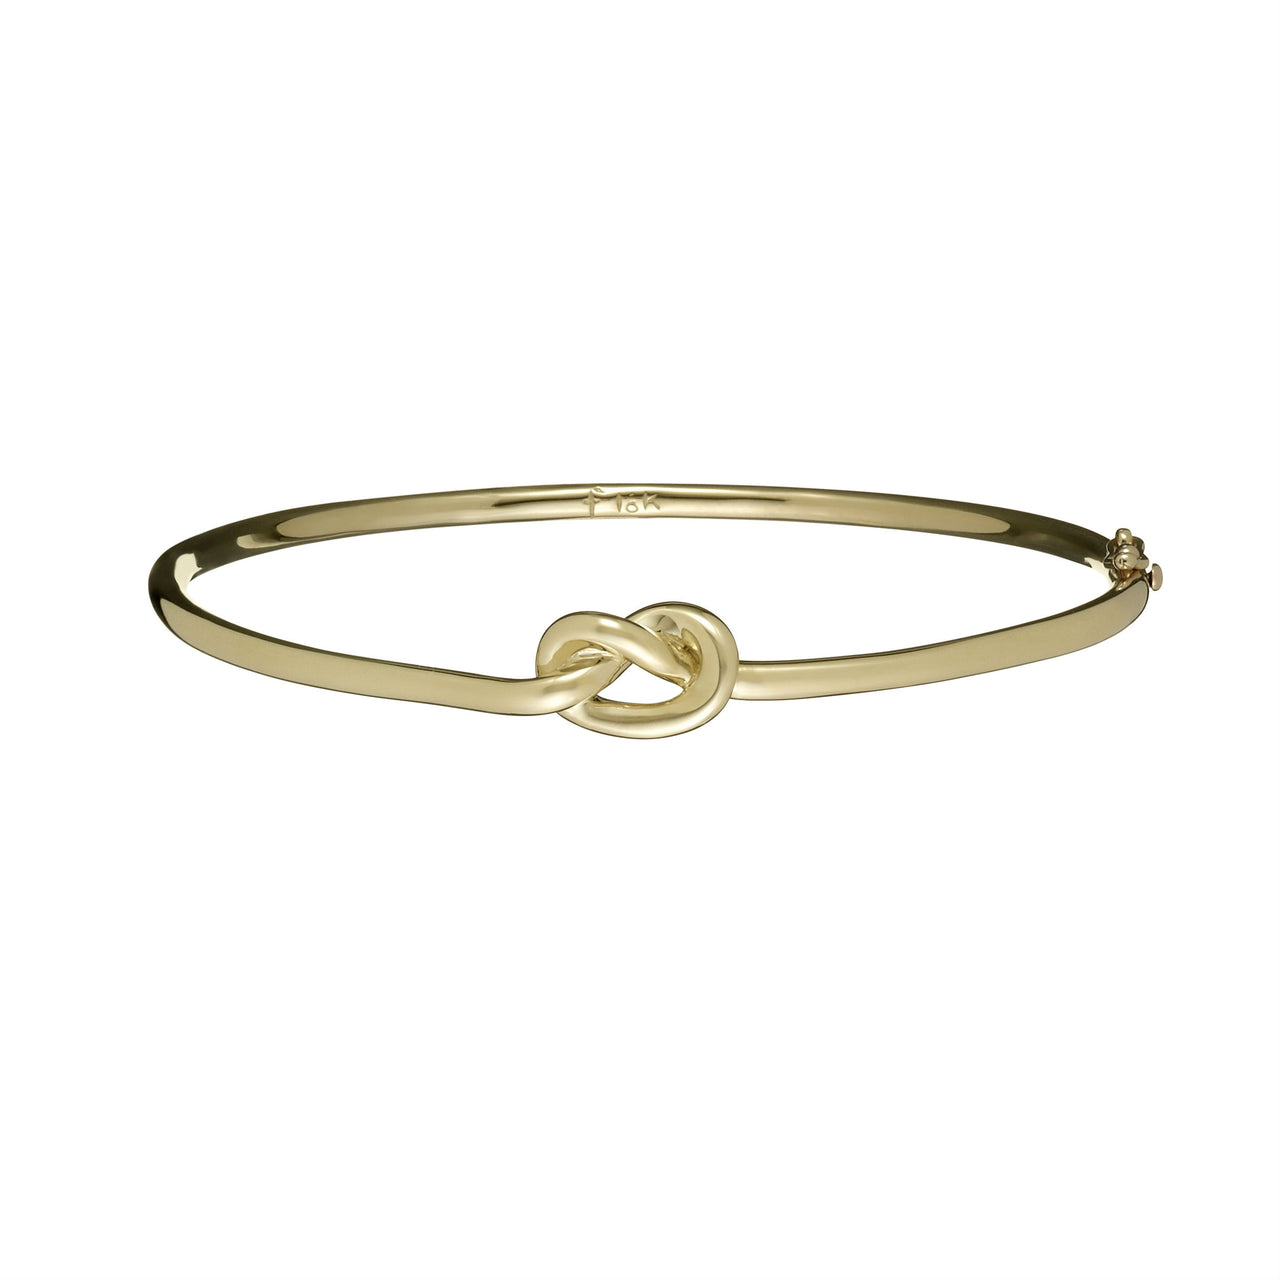 18k yellow gold love knot bangle by Finn by Candice Pool Neistat perfect for Valentines Day